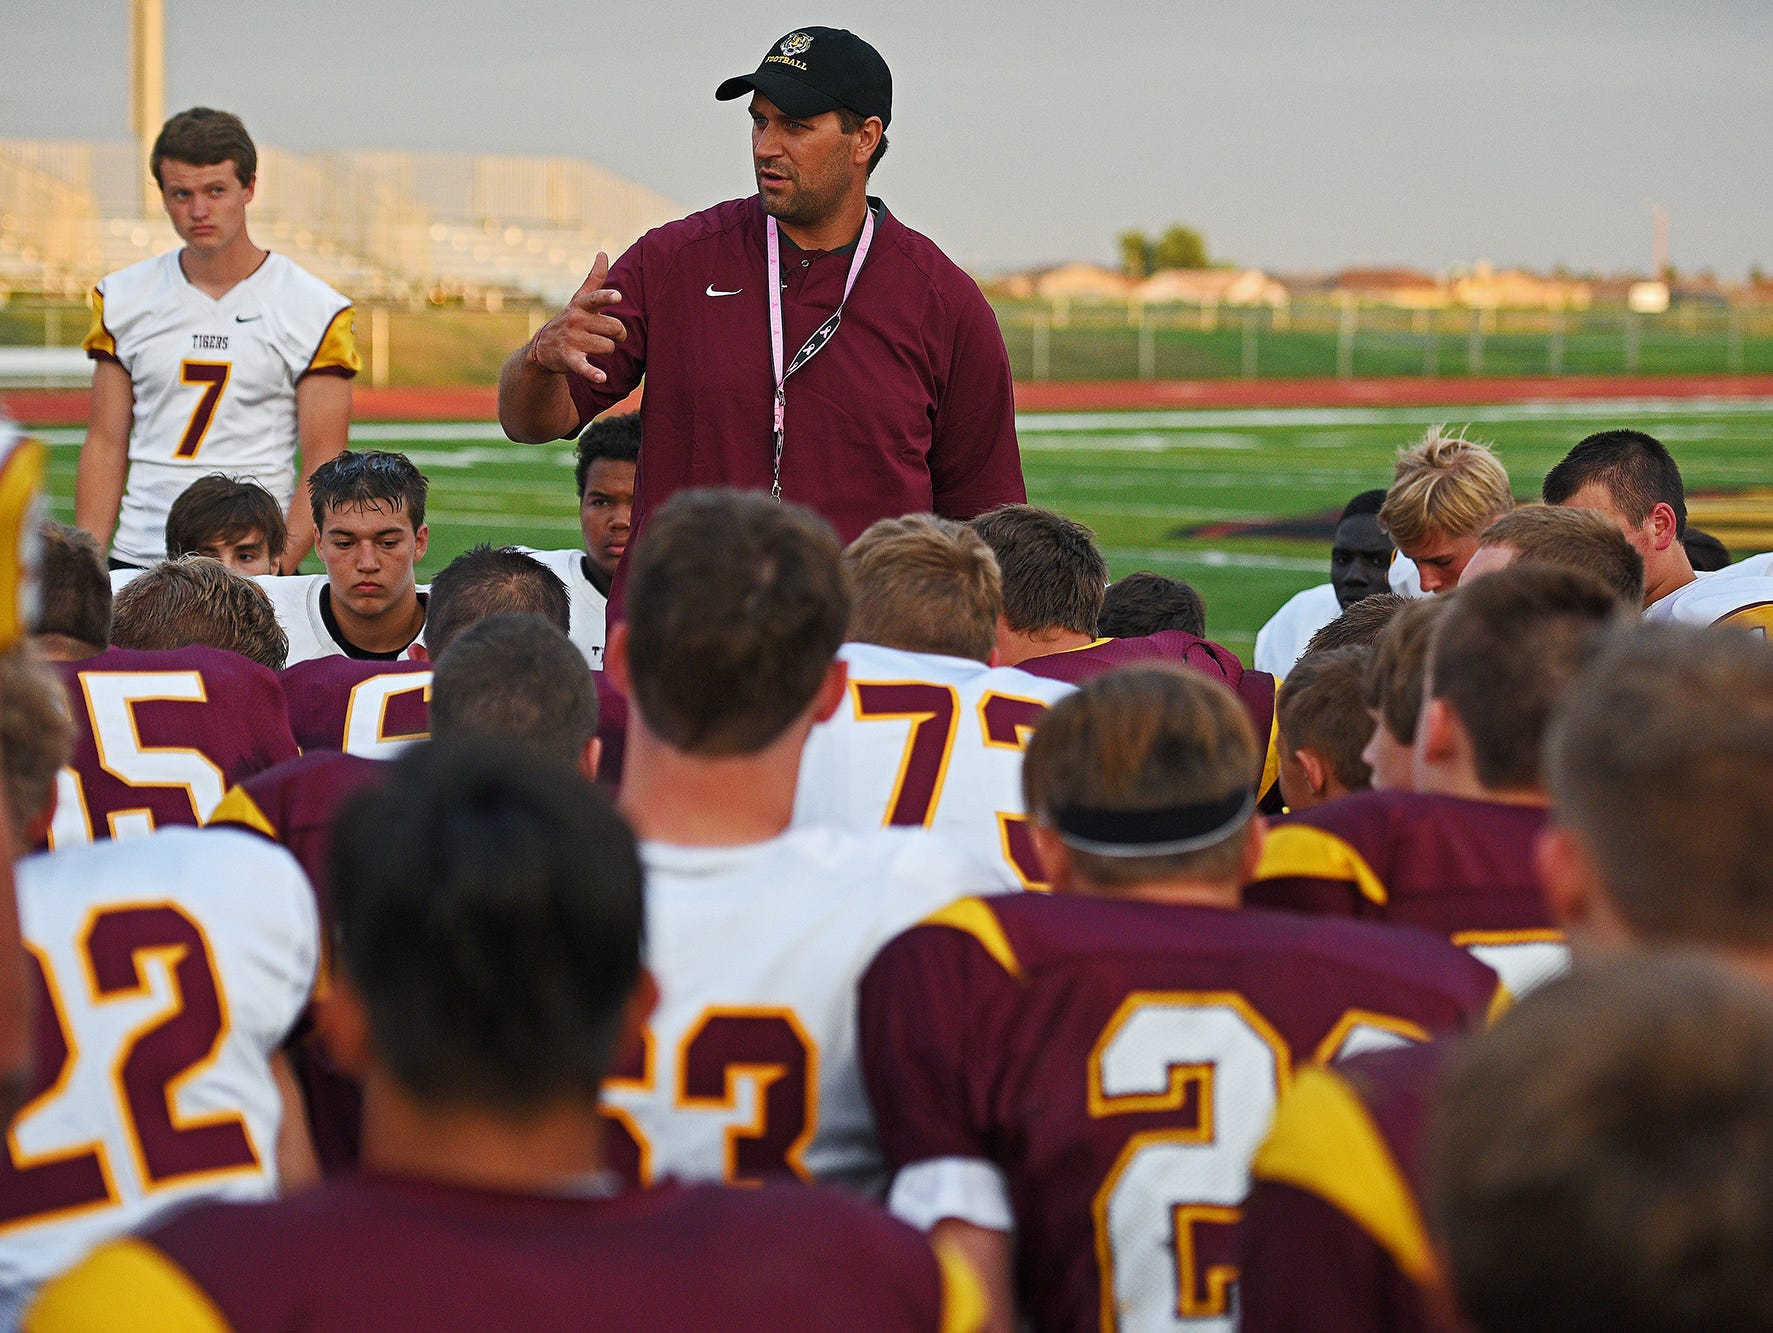 Harrisburg head football coach Brandon White speaks to his team after a scrimmage Friday, Aug. 19, 2016, at the Harrisburg High School in Harrisburg, S.D.